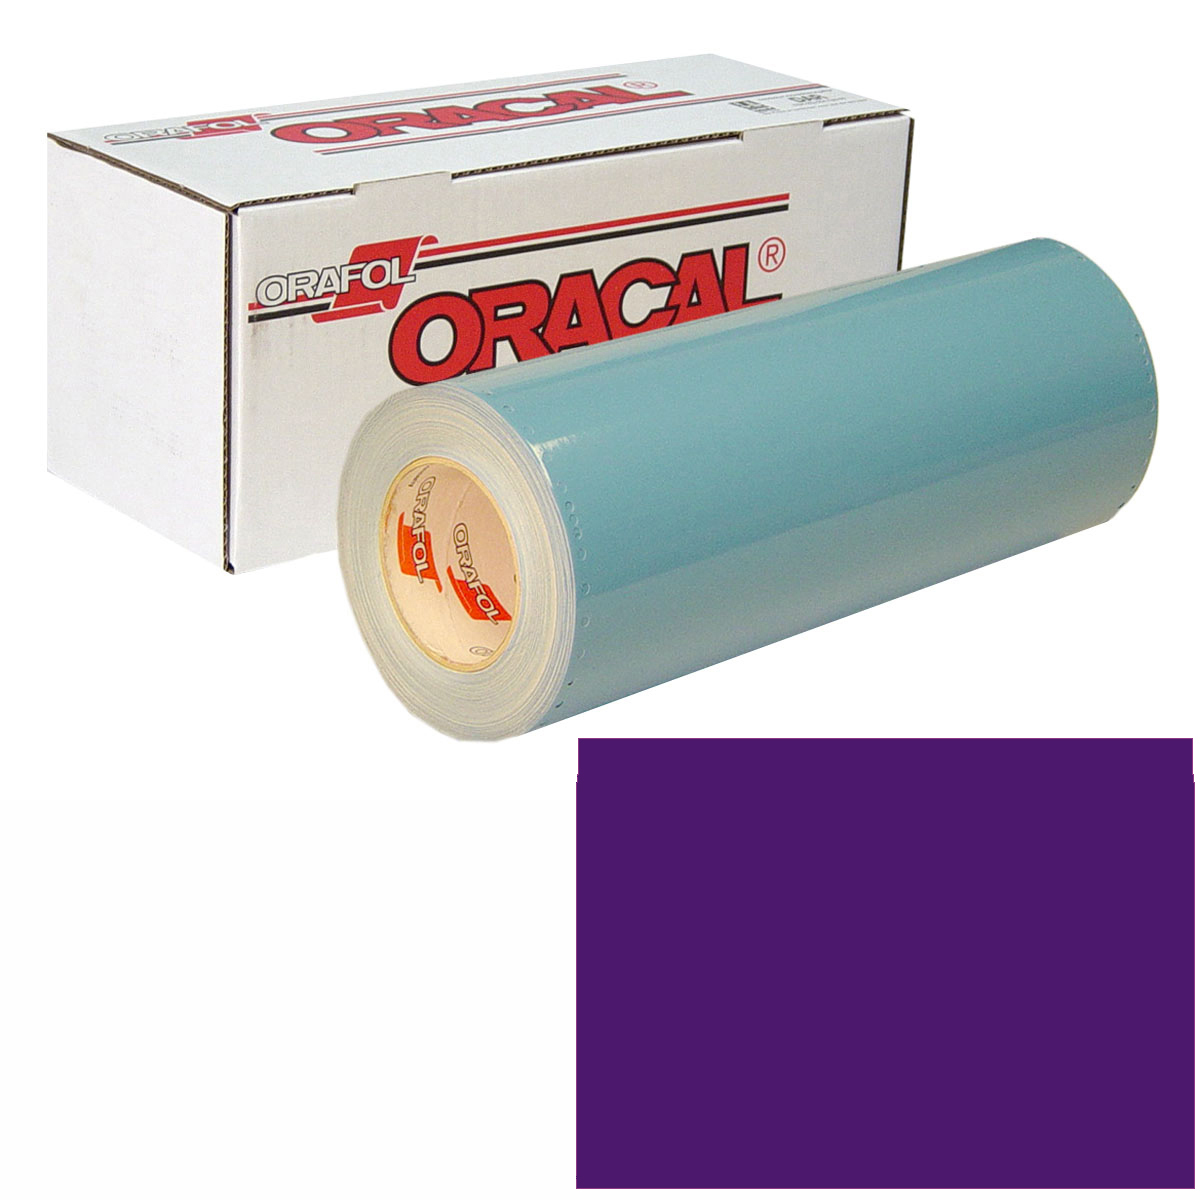 ORACAL 751 30in X 50yd 040 Violet